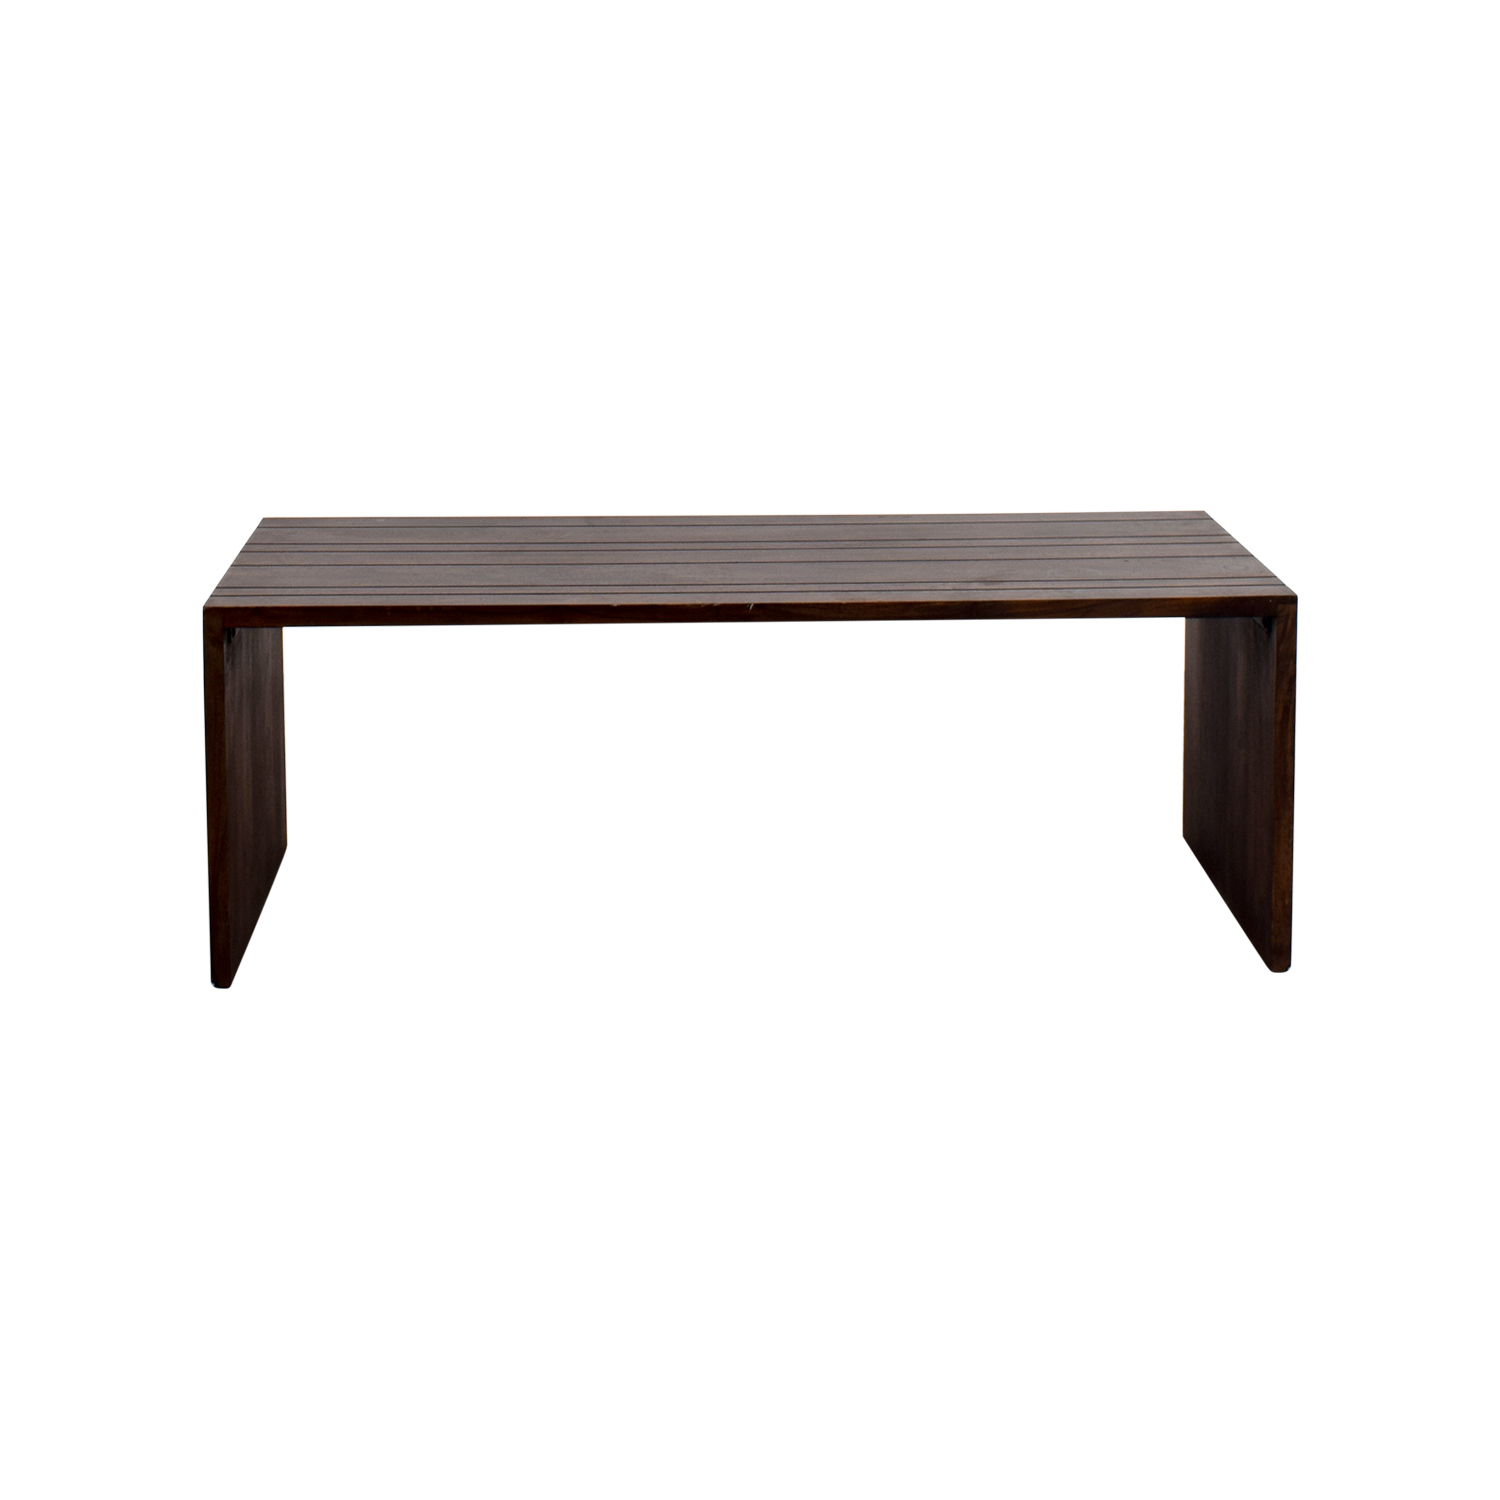 Pier 1 Pier 1 Wood Coffee Table nj